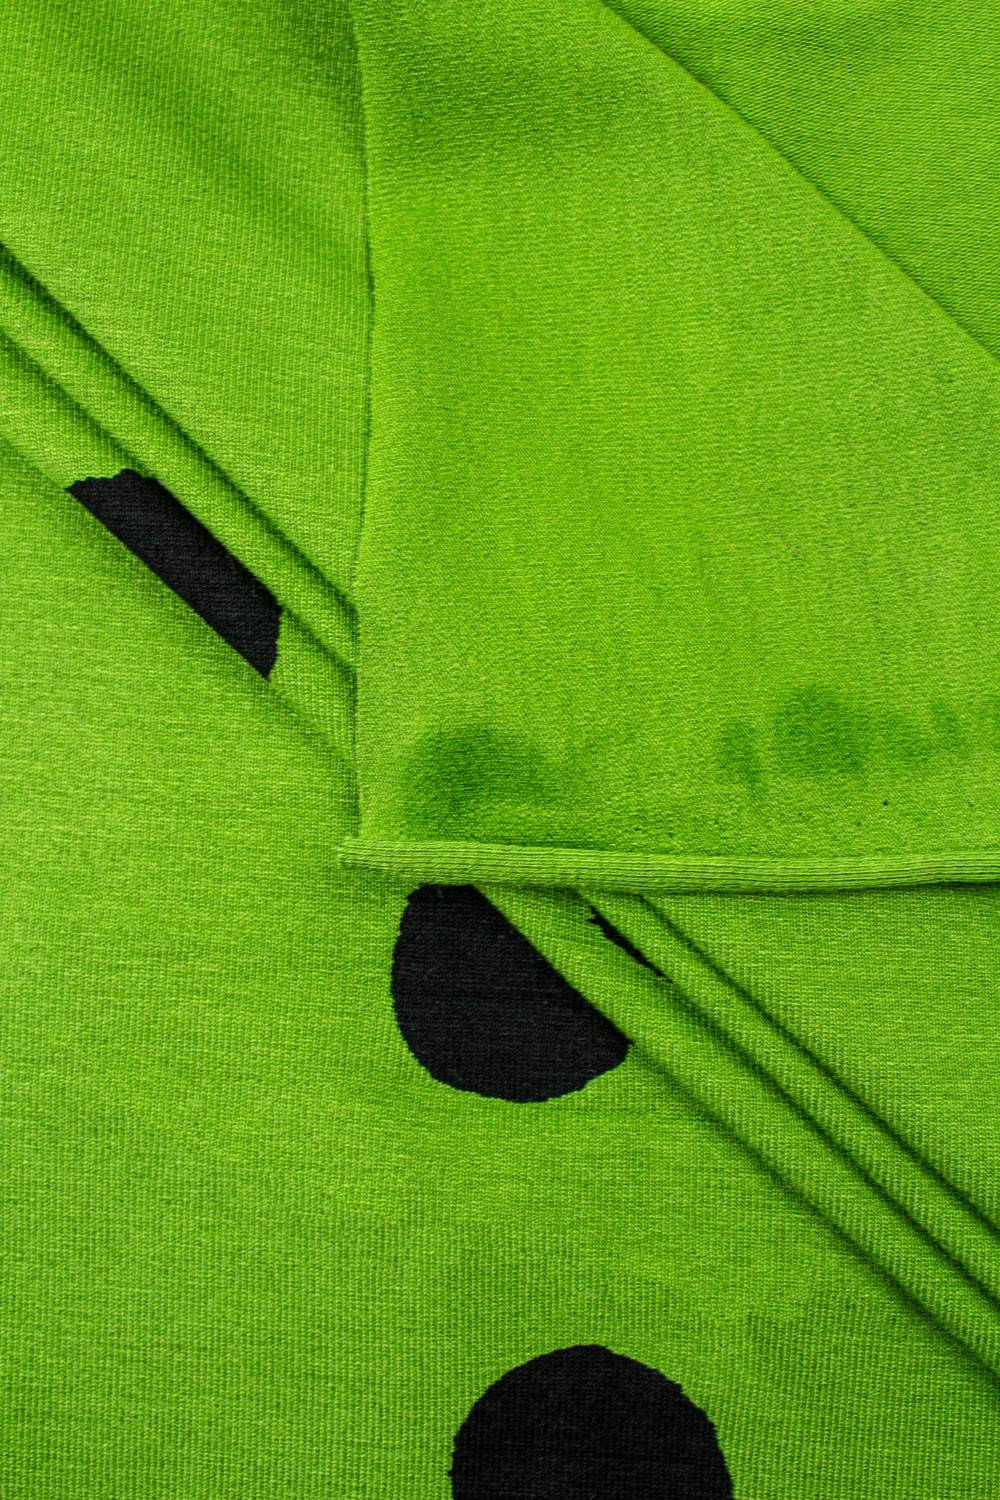 Knit - Viscose Jersey - Apple Green With Big Black Ink Spots - 155 cm - 160 g/m2